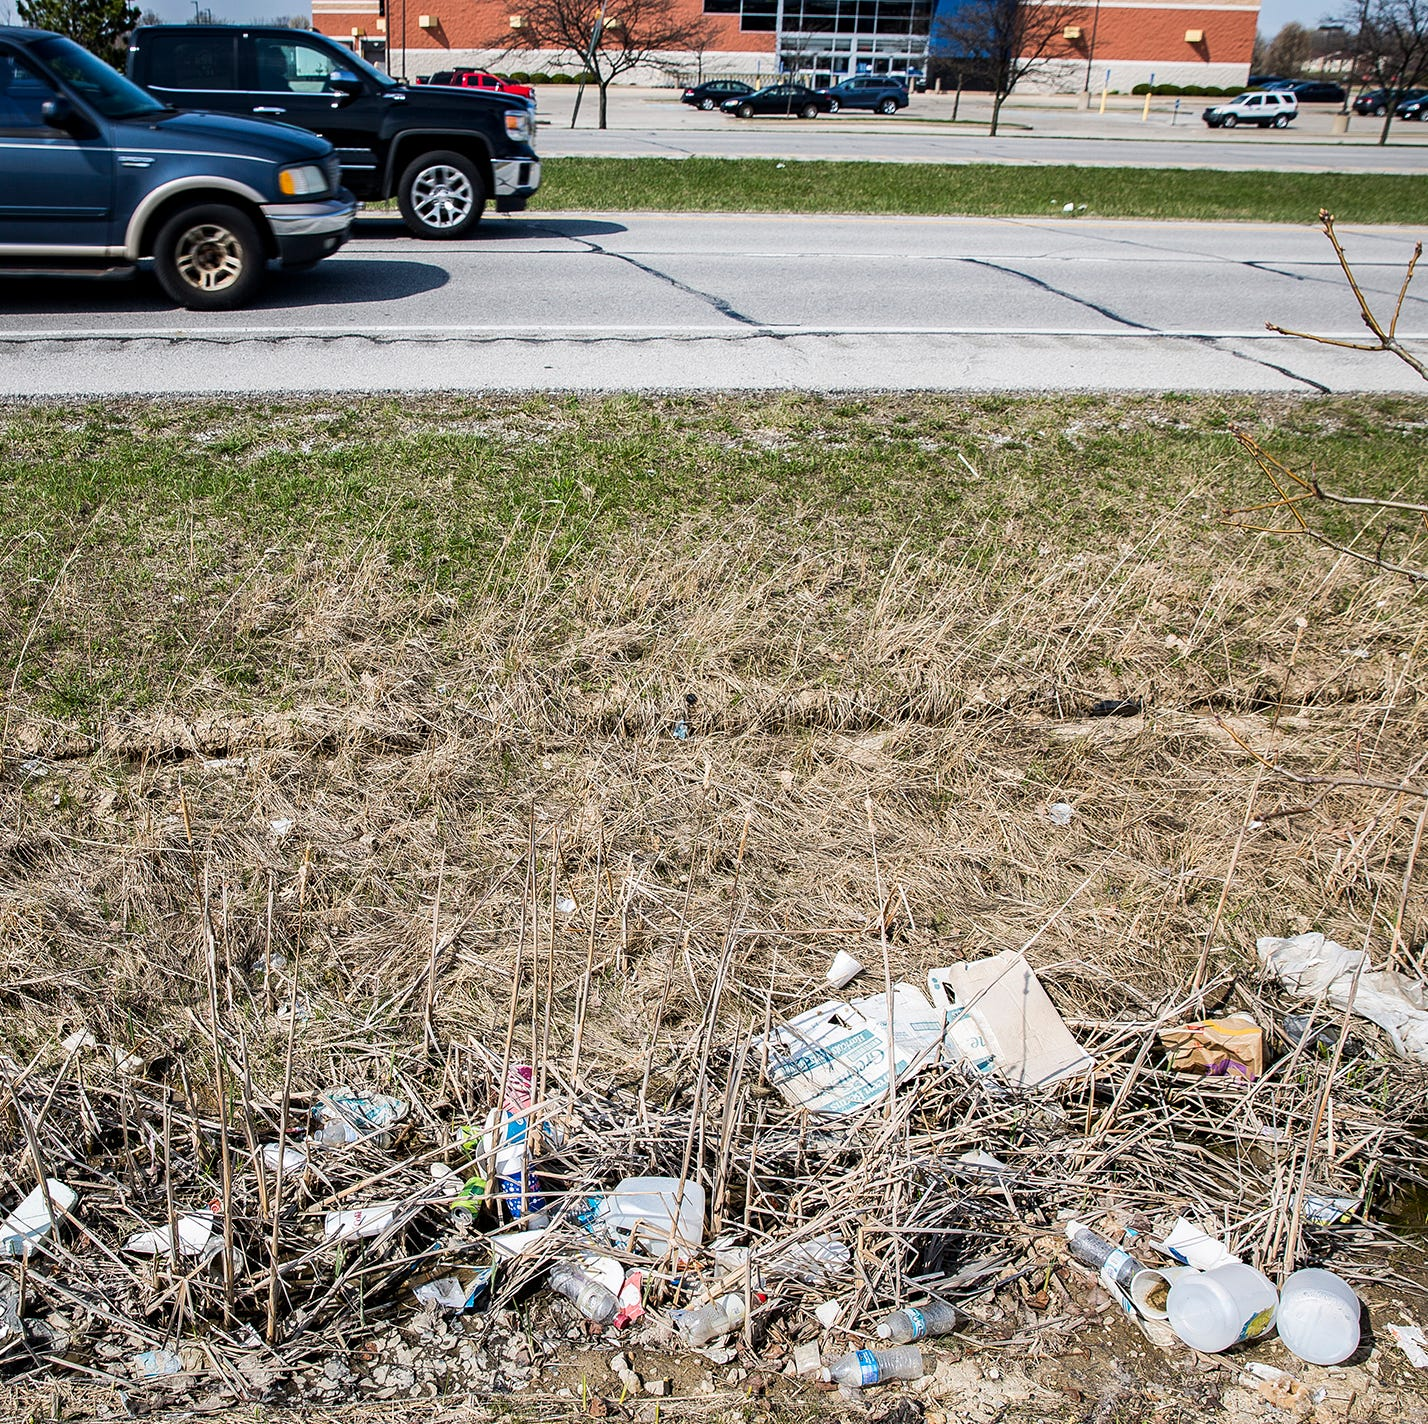 Litter piling up again at McGalliard gateway to Muncie